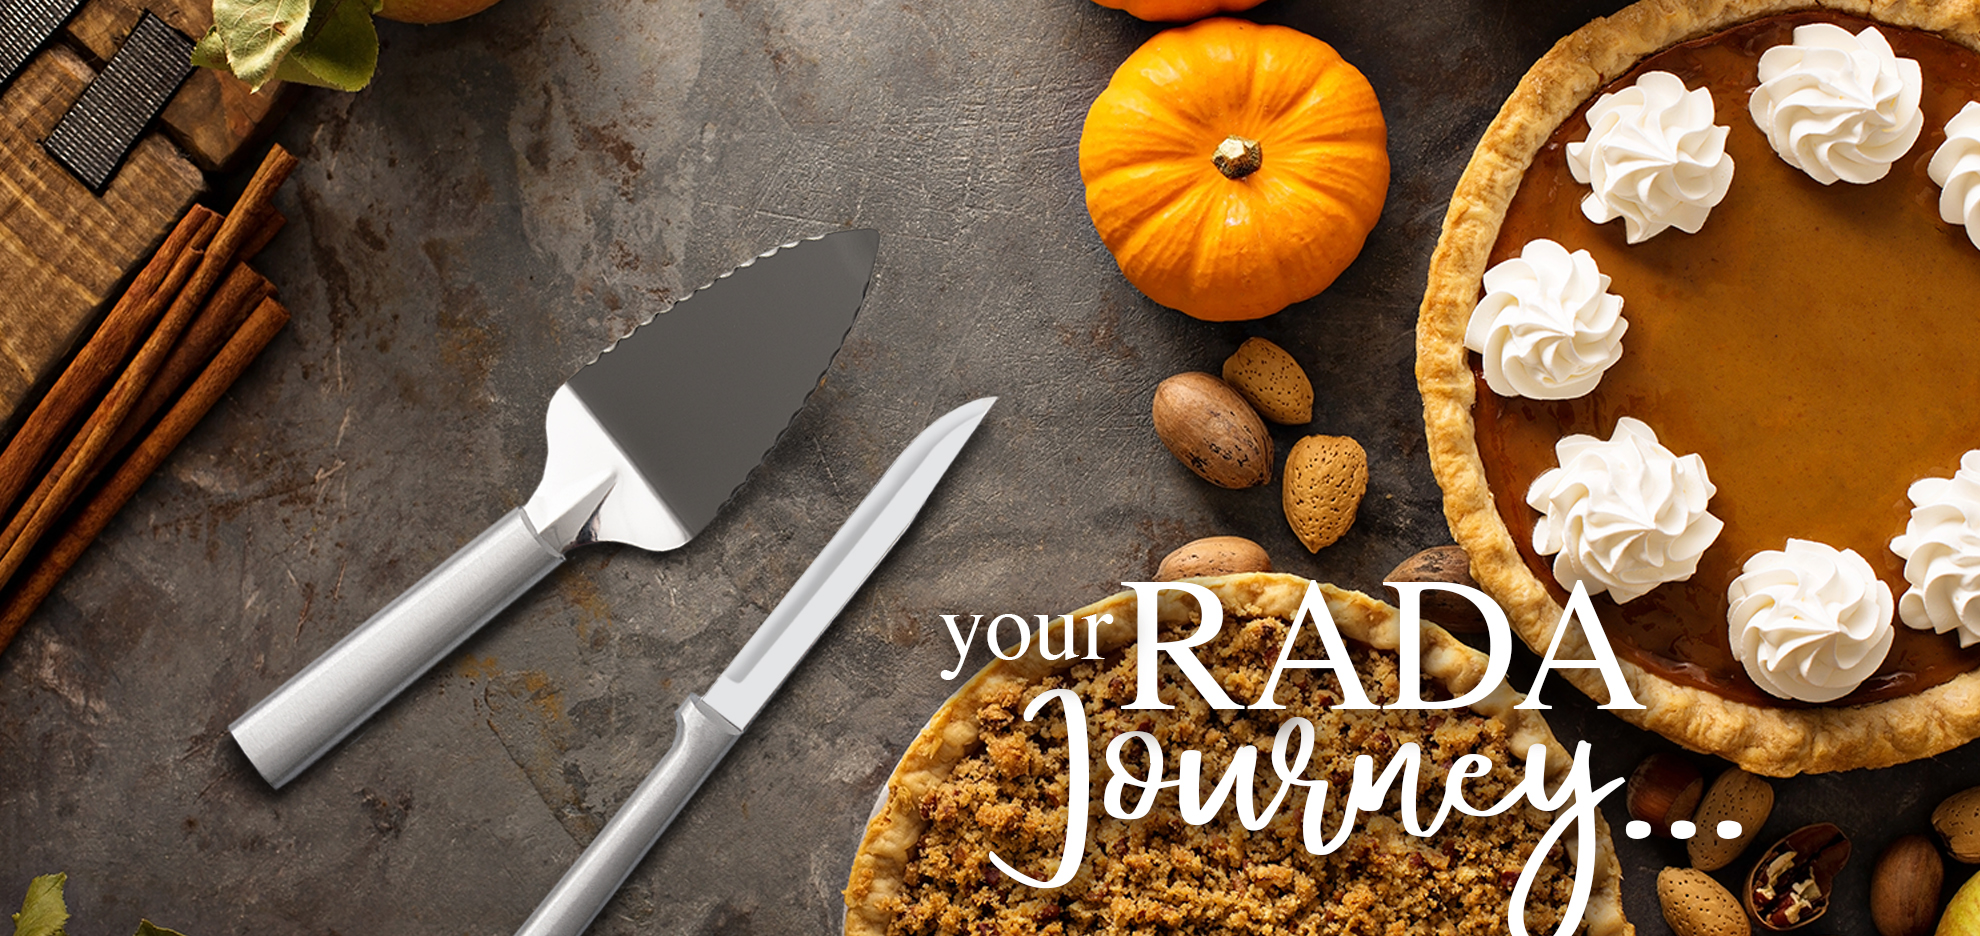 Rada Pie Server and Slicer Knife nect to pumpkin pie and text that reads your Rada journey...